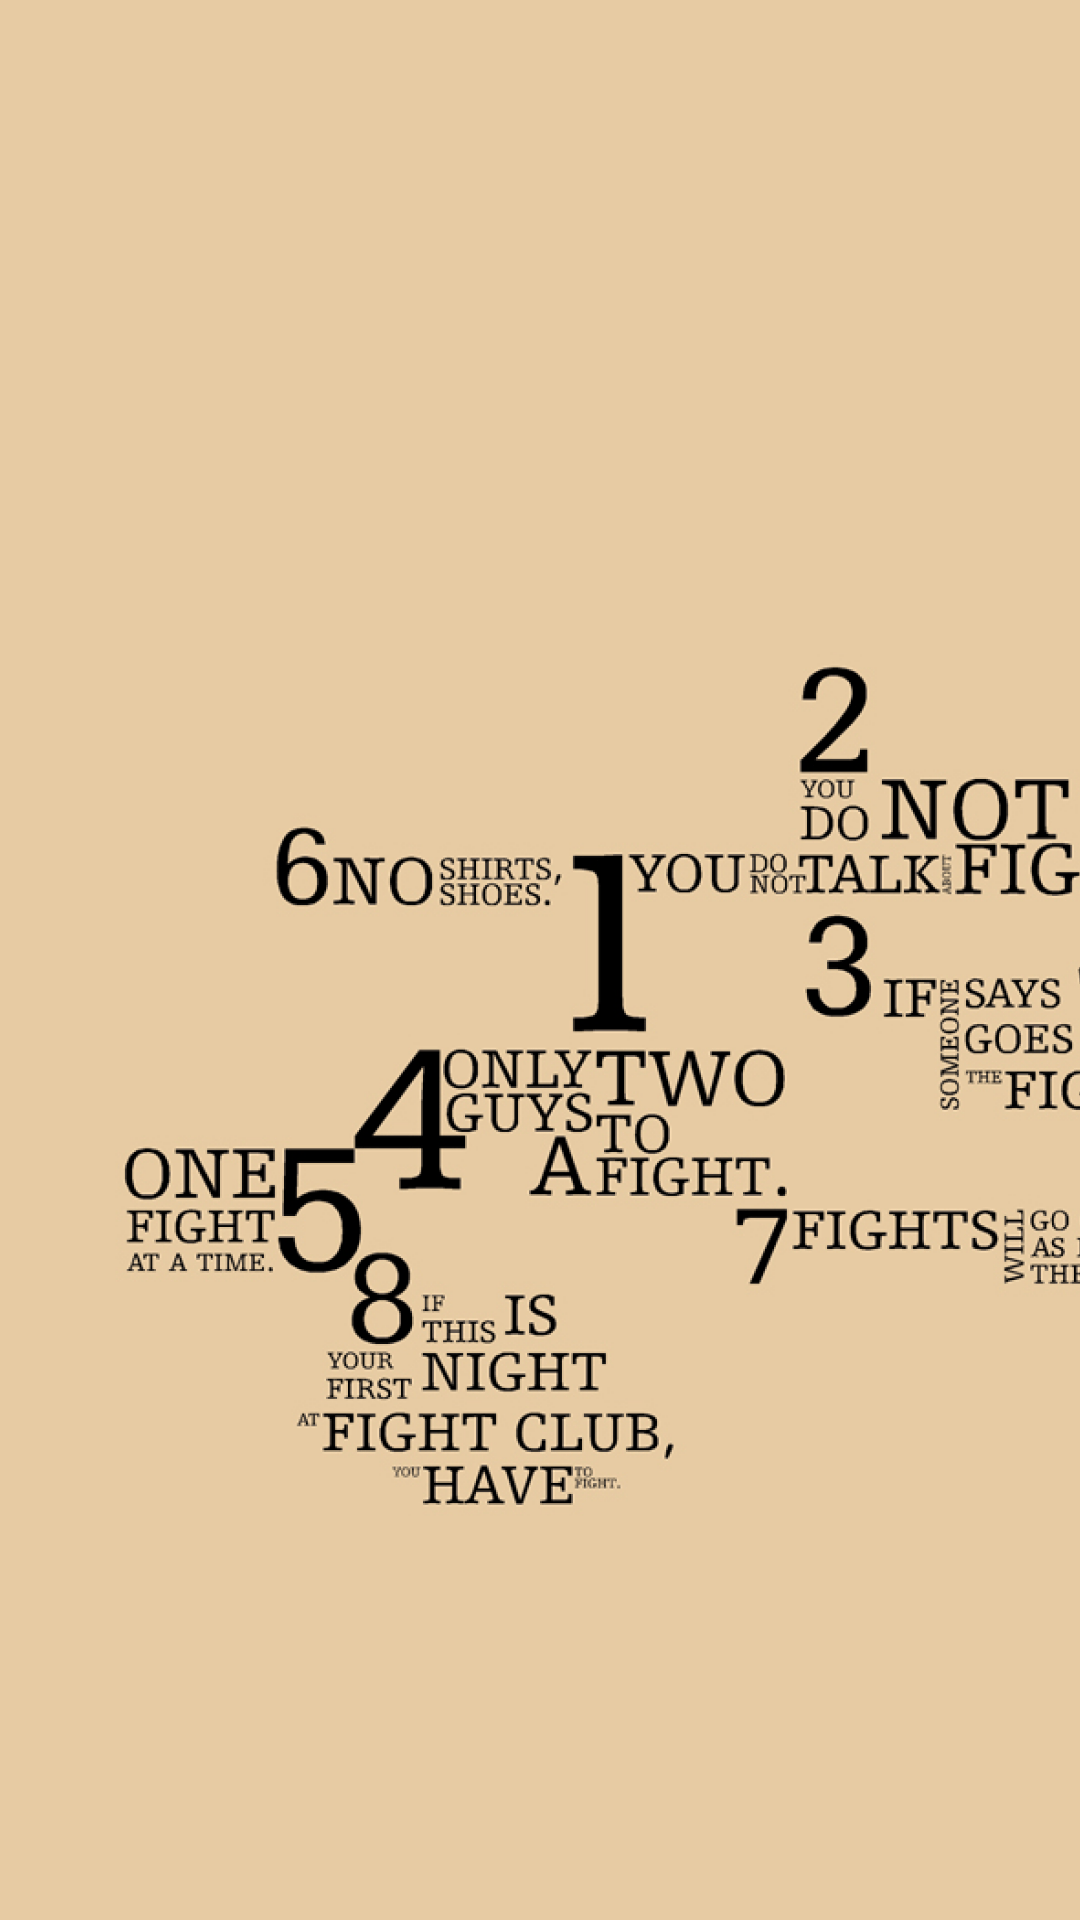 Fight Club Rules Quotes Iphone 6 Plus 1080x1920 Wallpaper